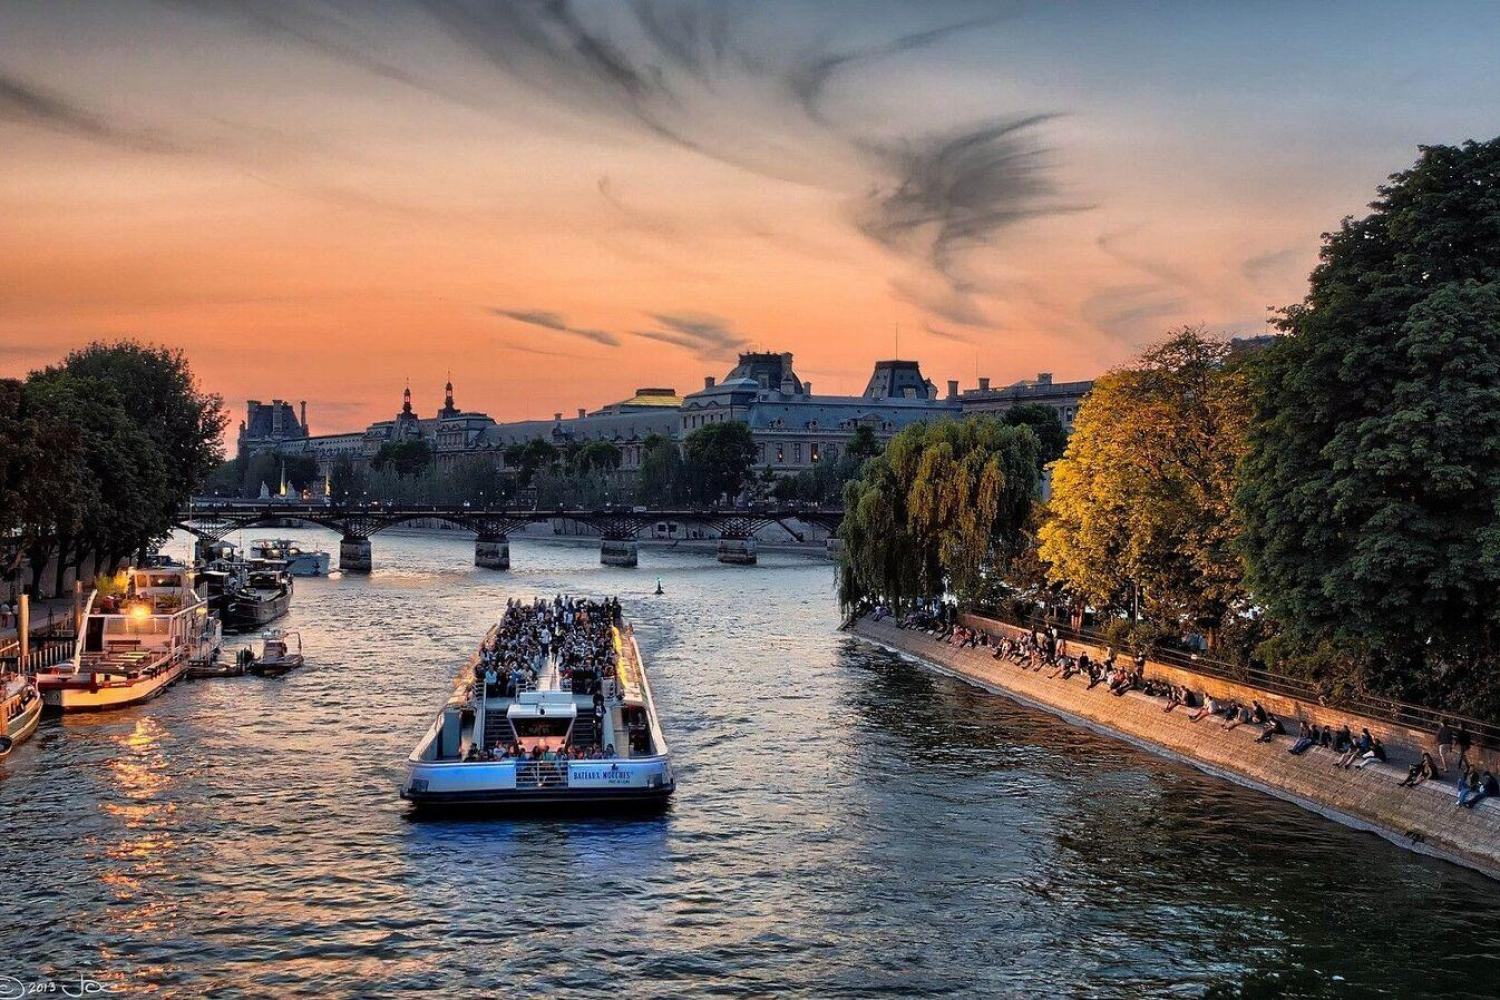 Early Evening Marina Dinner Cruise on the Seine River